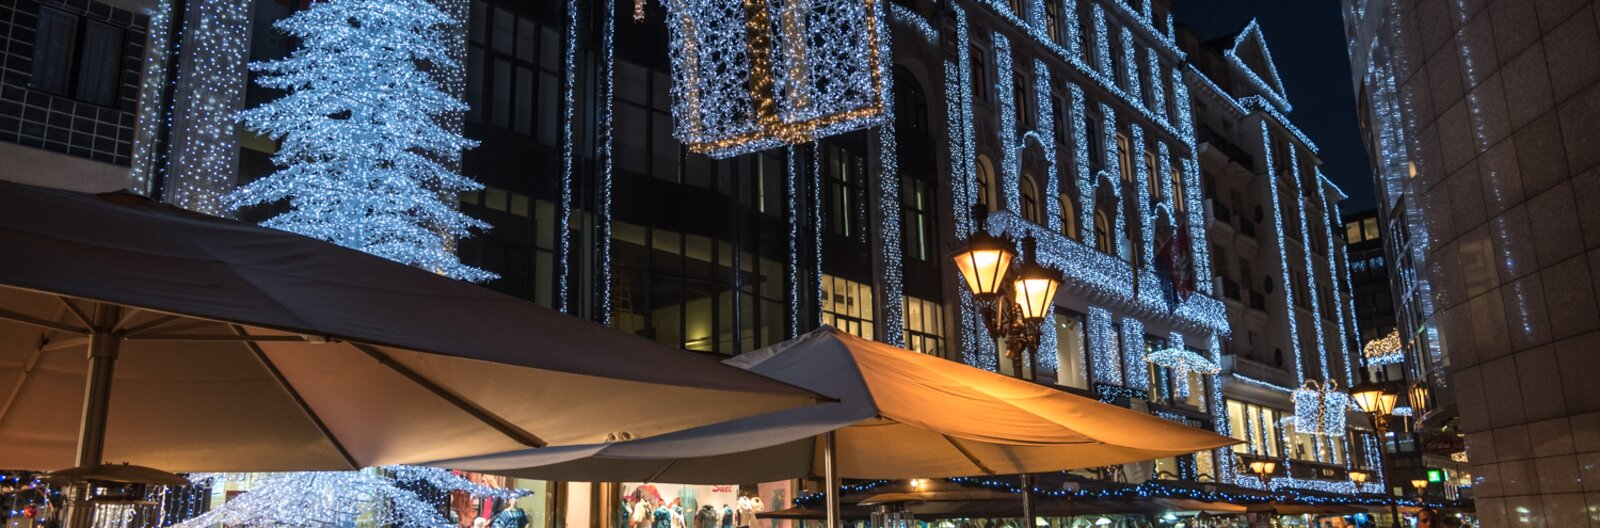 Top 10 Christmas fairs of Budapest in 2016